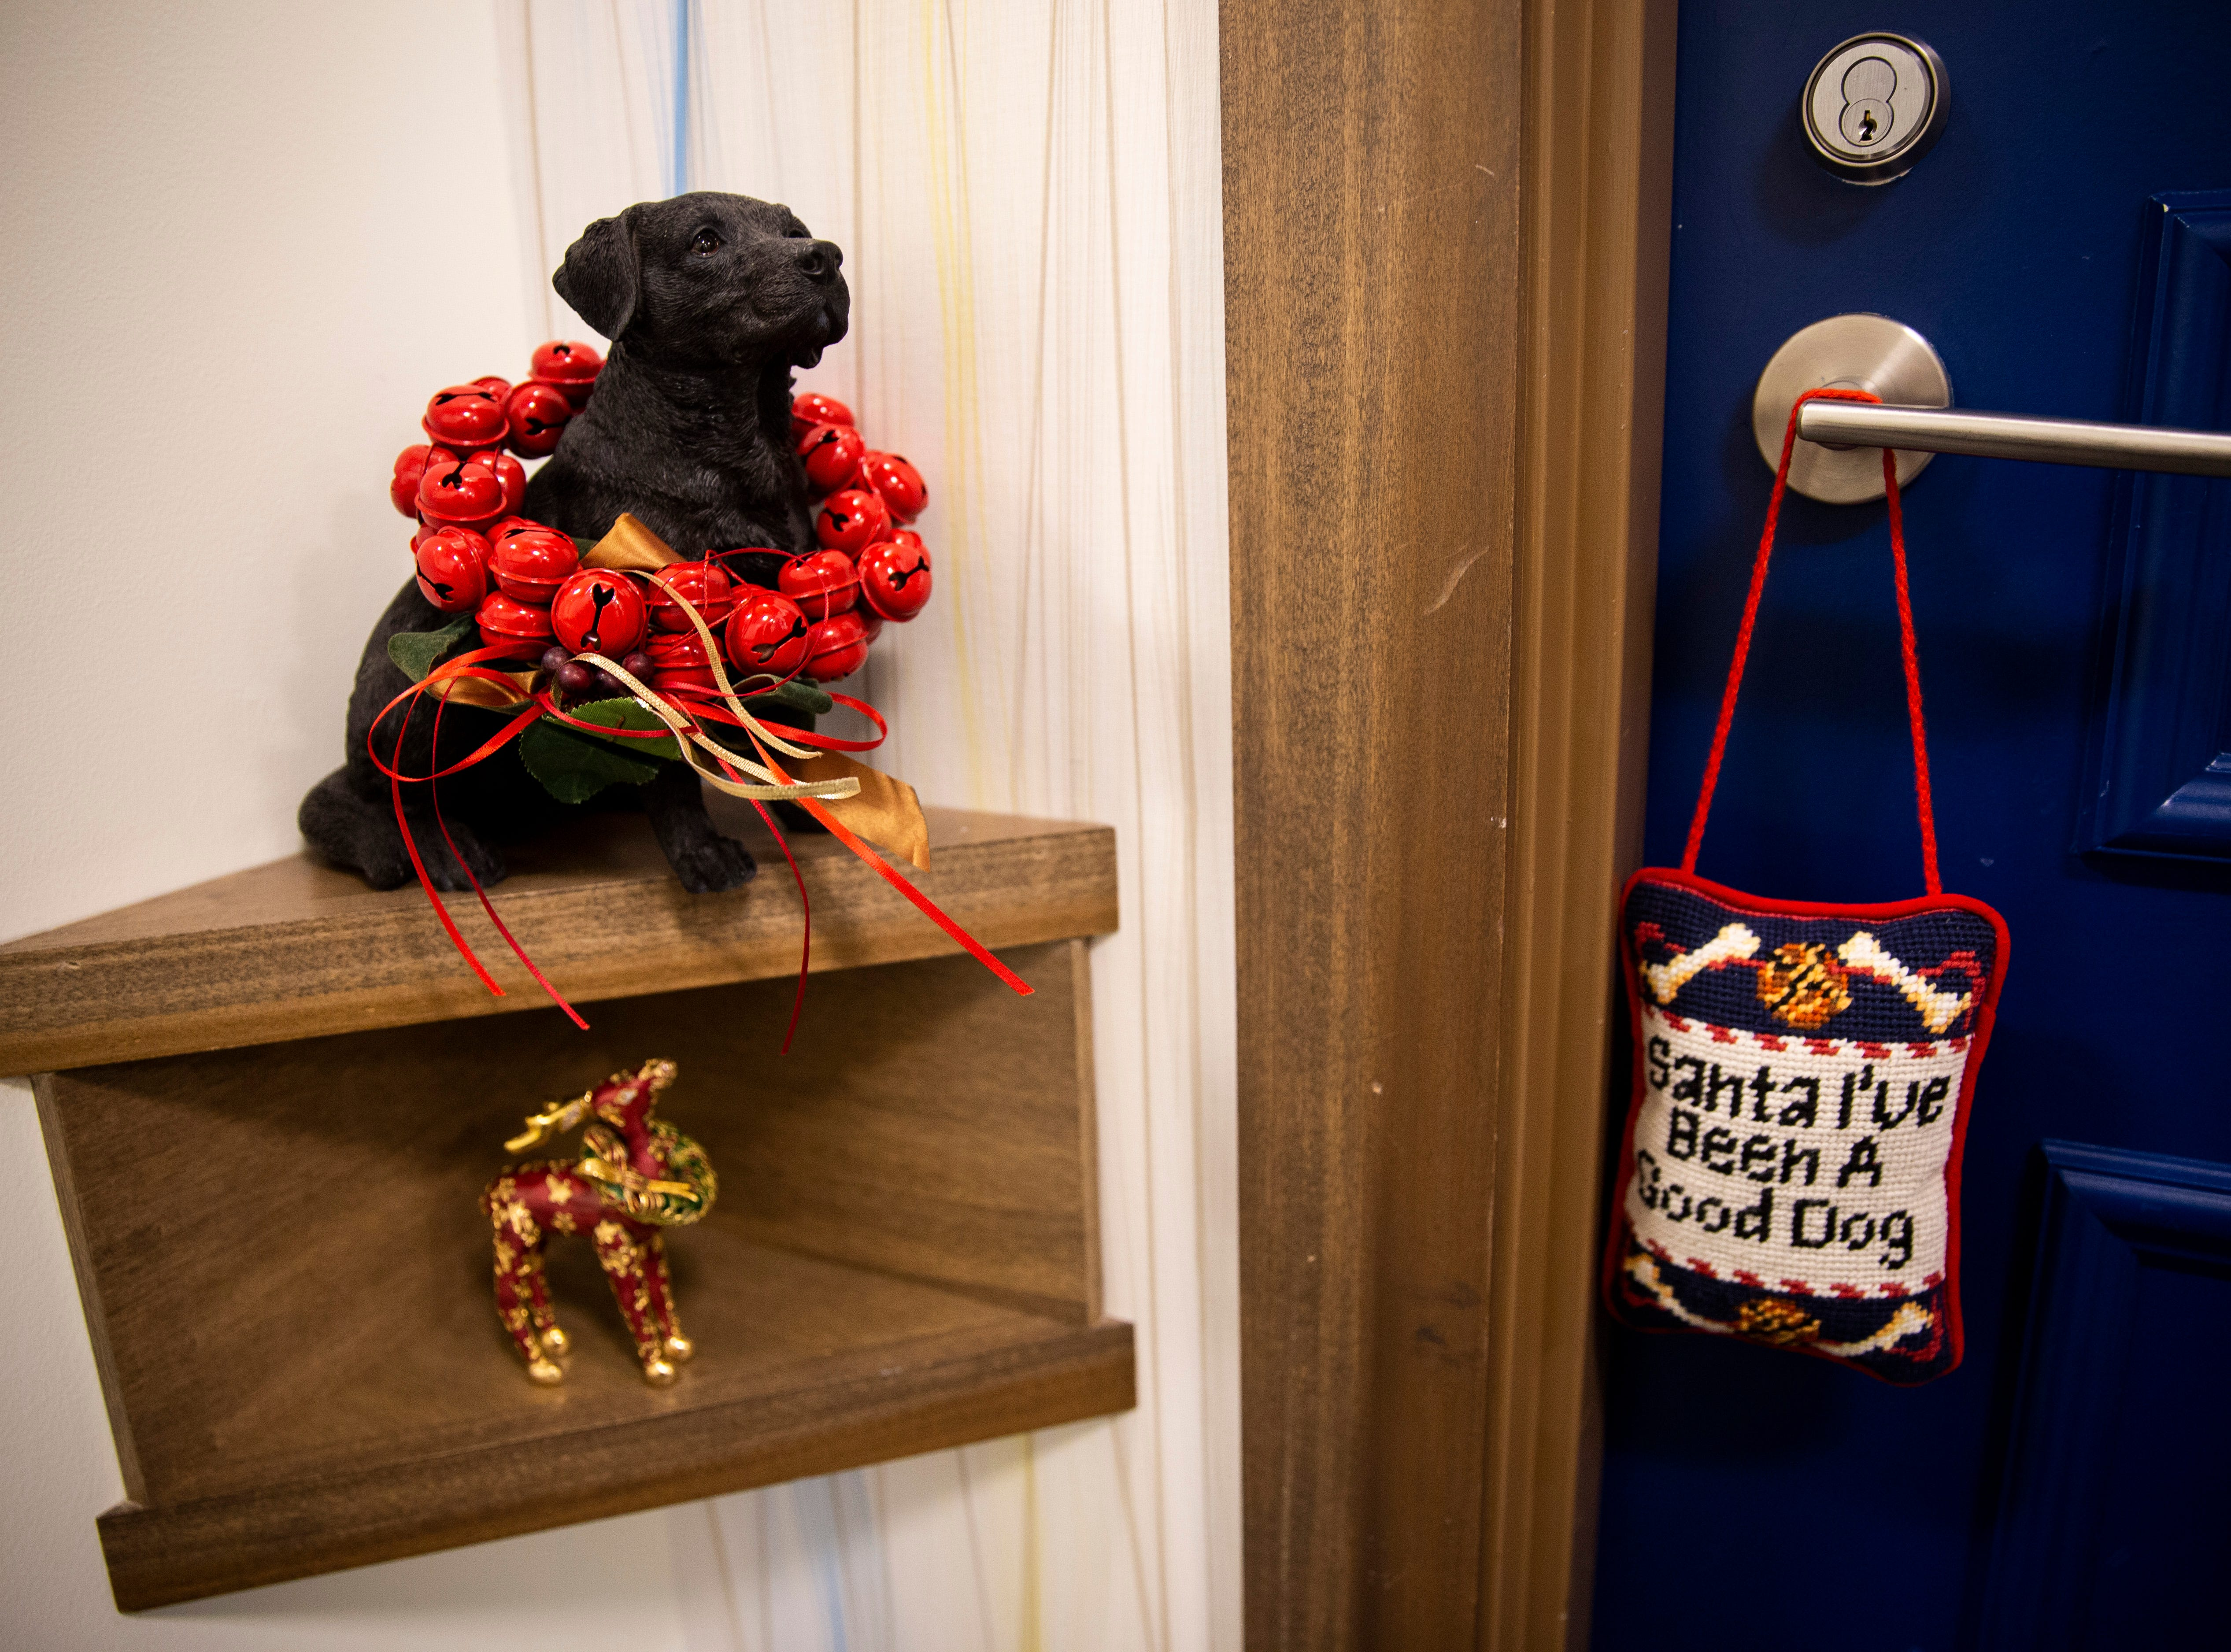 Christmas decorations and a statue resembling Lynn Hertel's service dog, Dutch, decorate the entryway of the apartment Hertel shares with her father on Tuesday, Dec. 11, 2018, in North Naples.